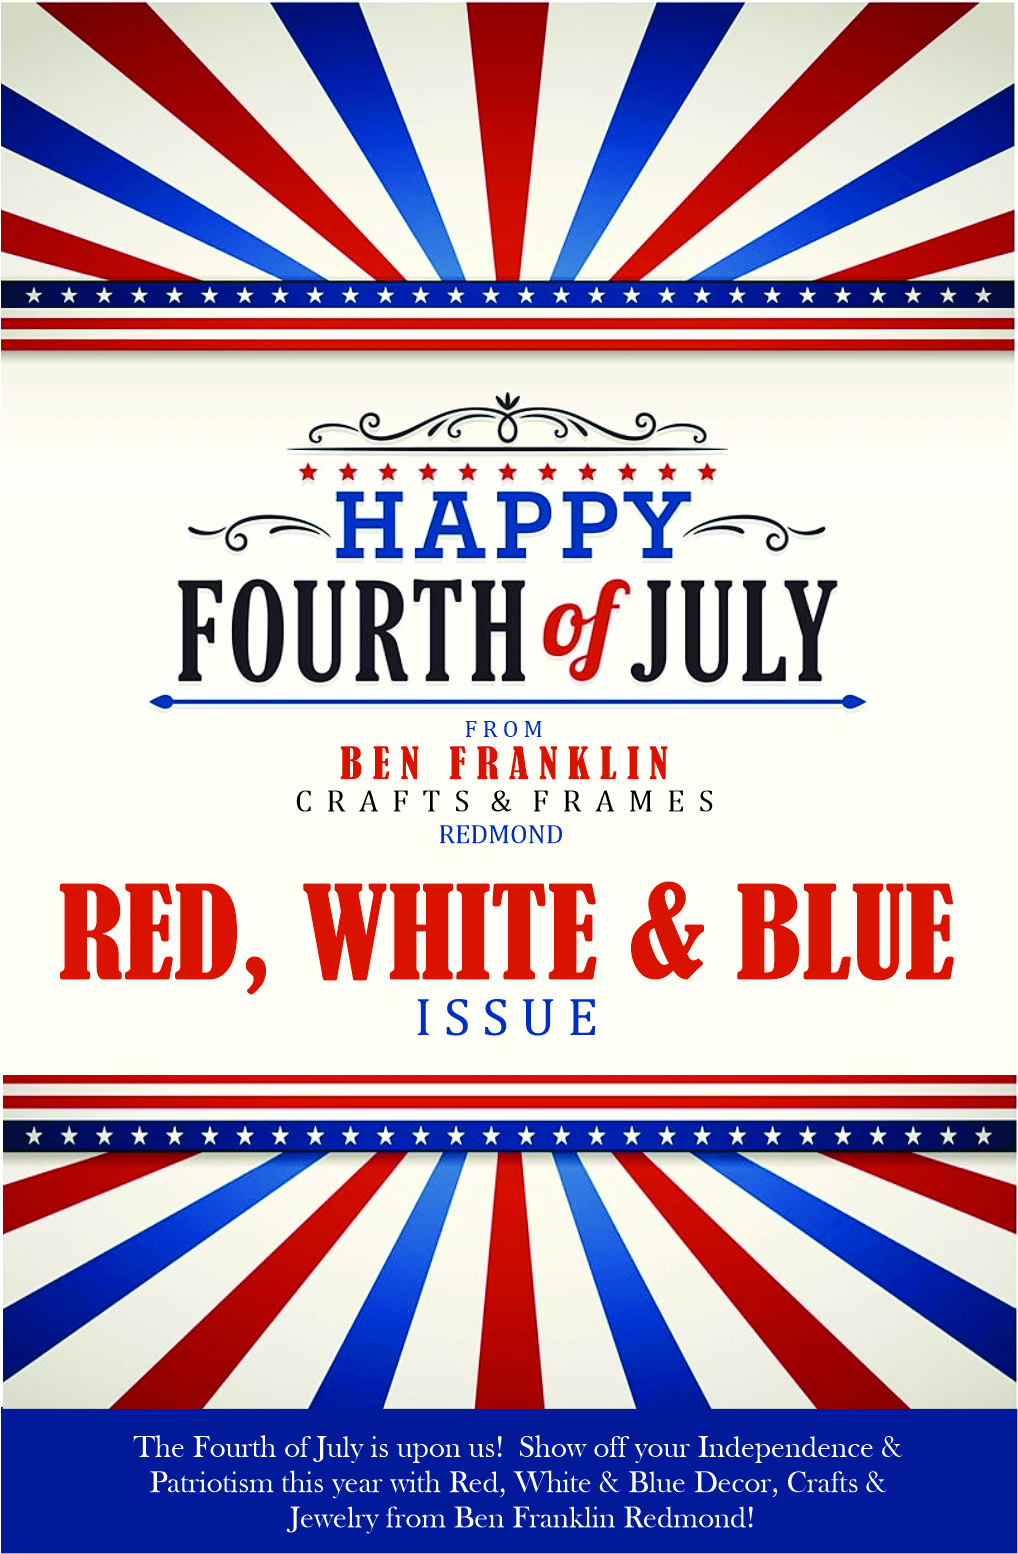 red white and blue ad p1.jpg